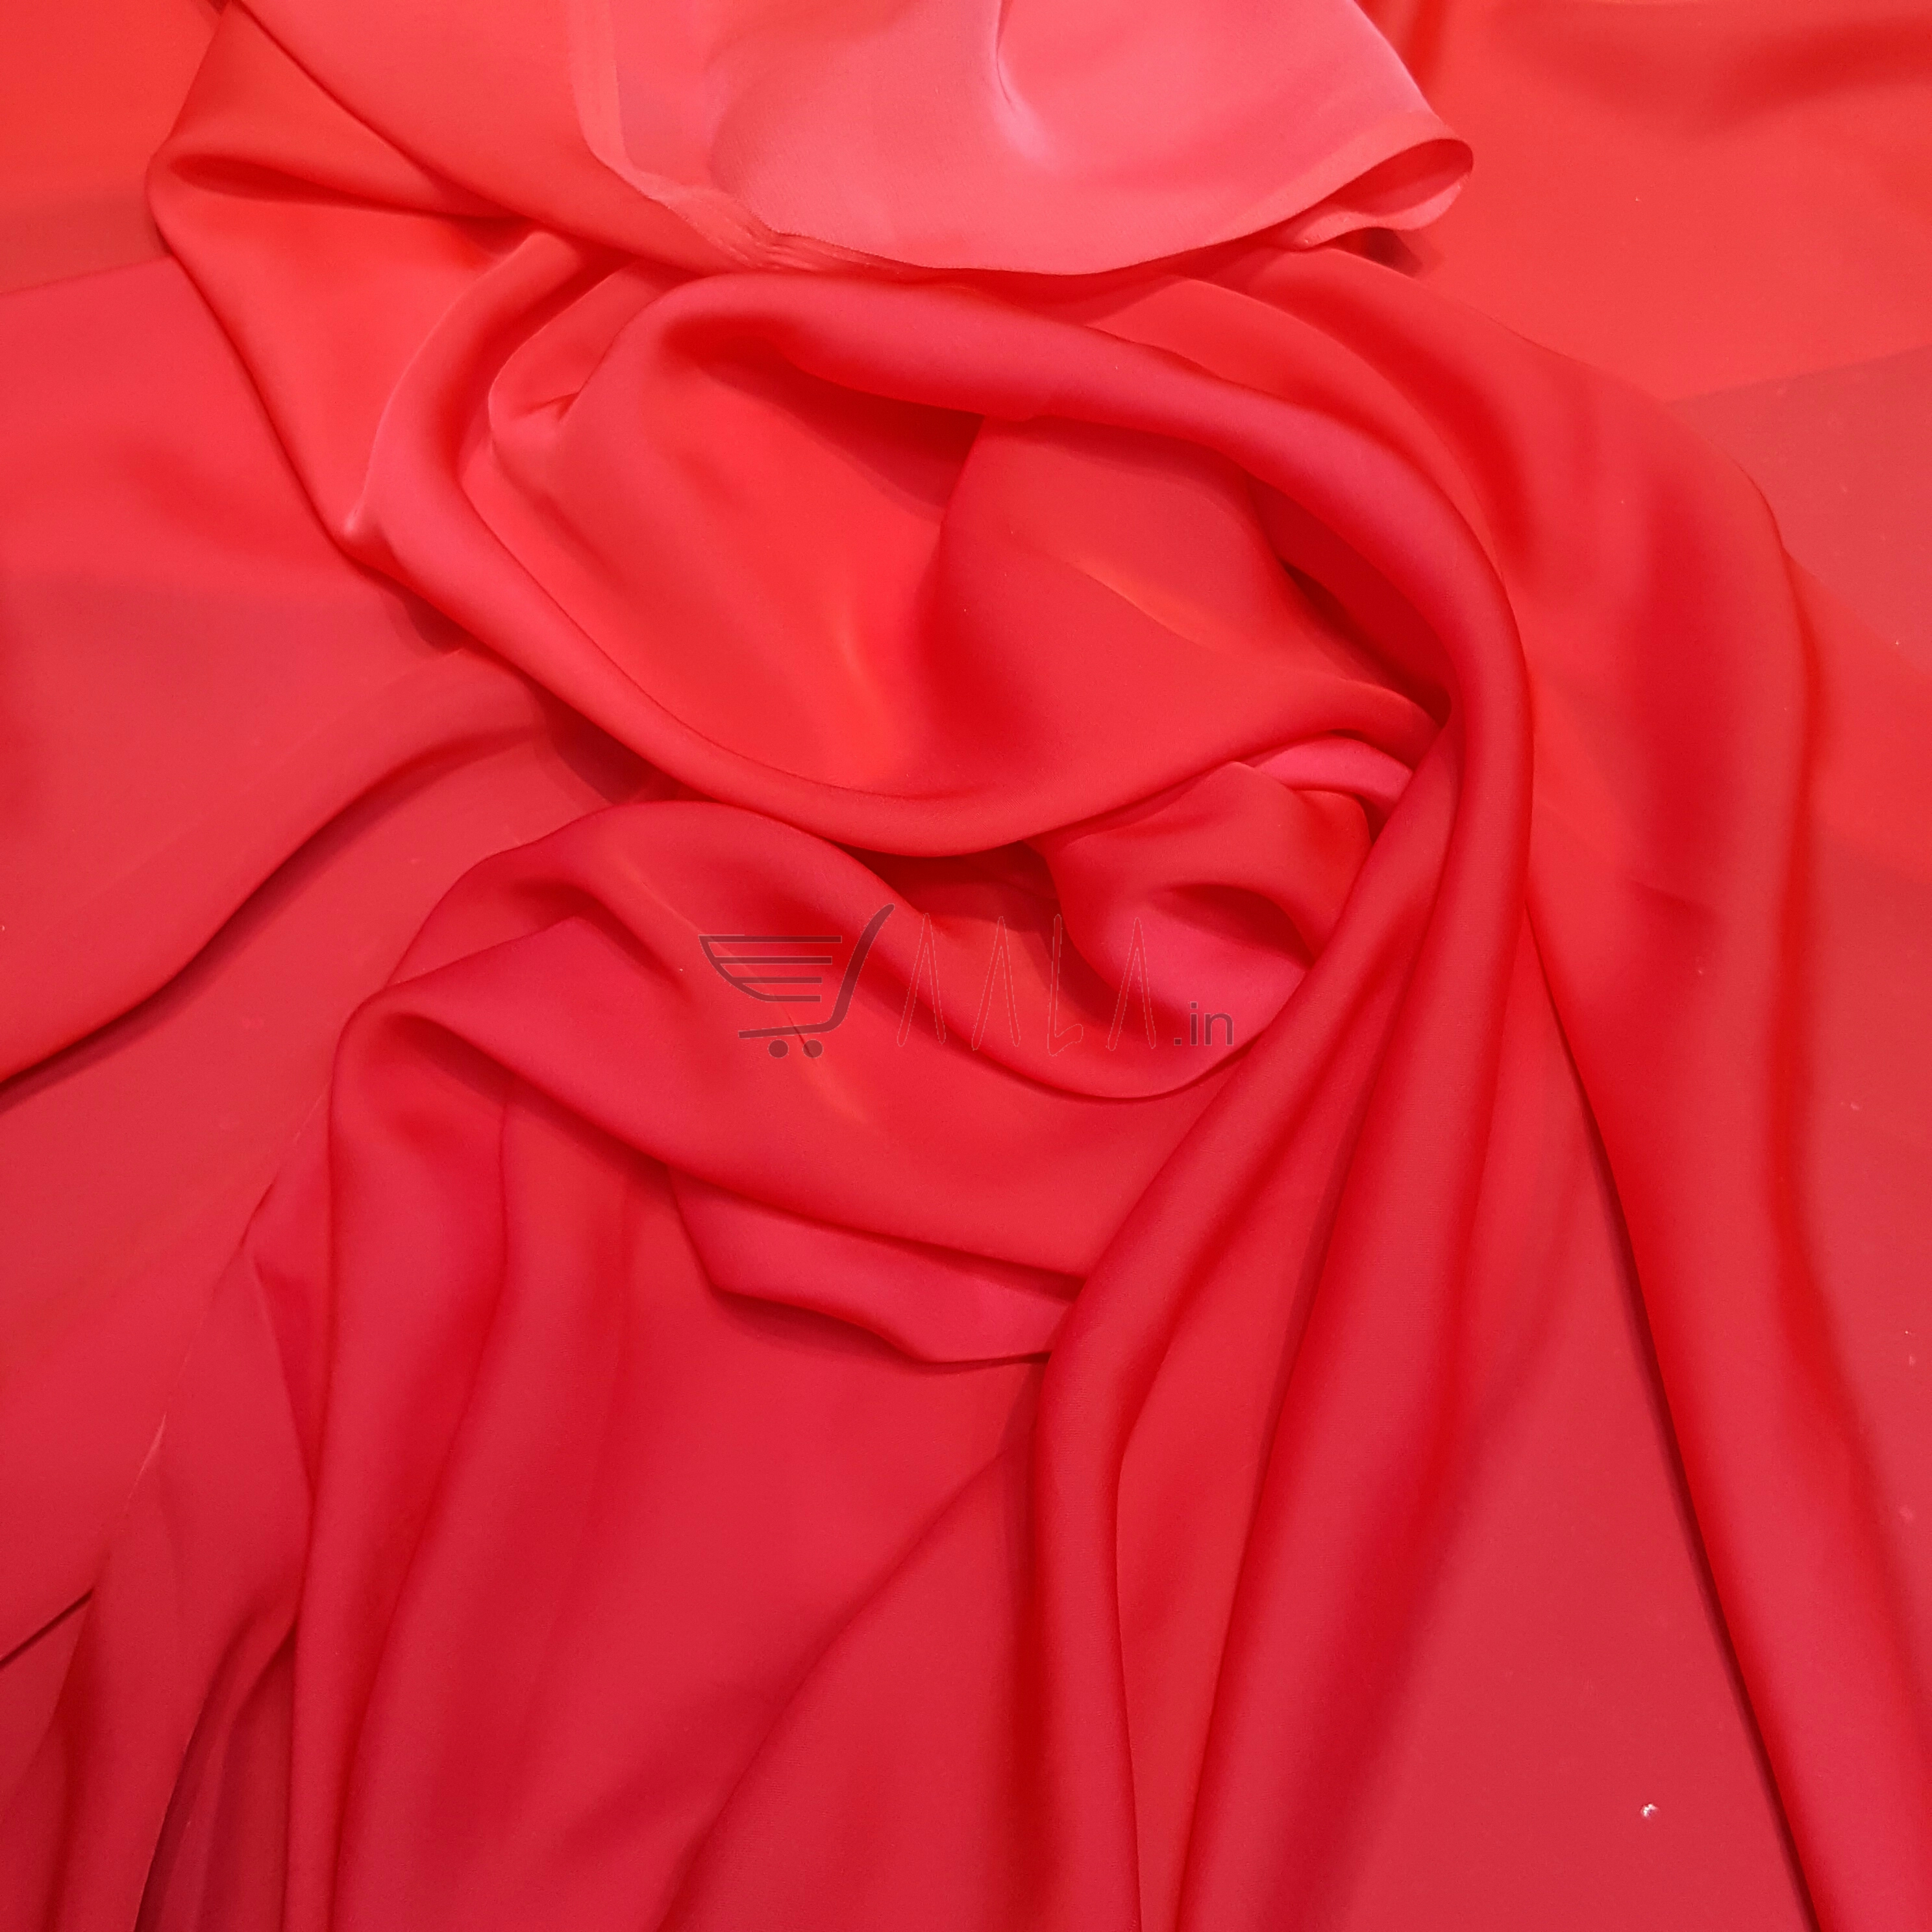 Two Tone Flat Chiffon Poly-ester 44 Inches Dyed Per Metre #2052